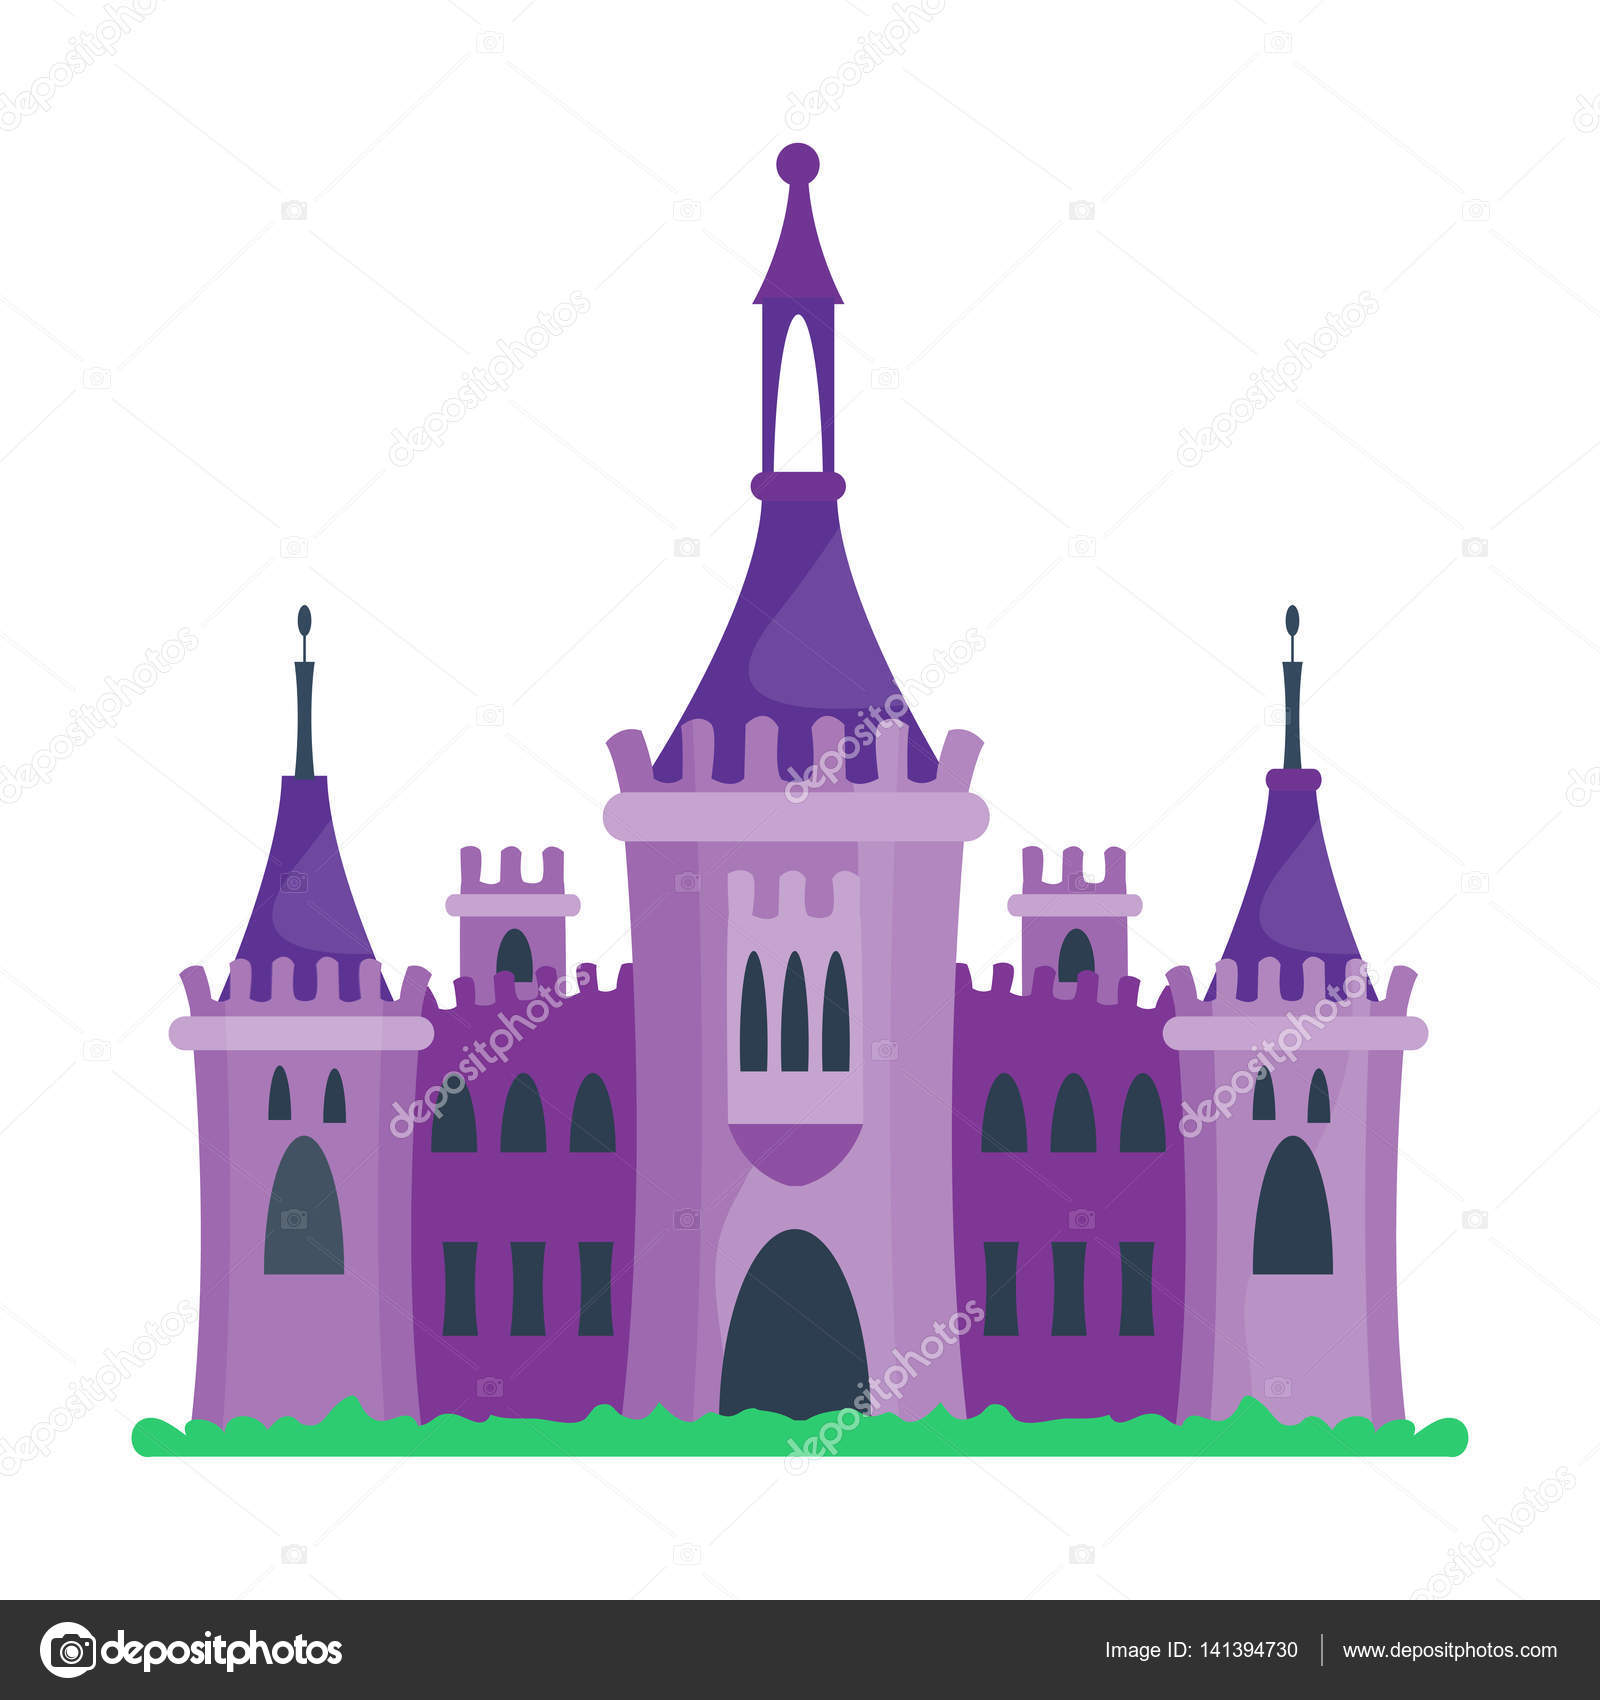 Dessin Anime Chateau Architecture Illustration Vectorielle Image